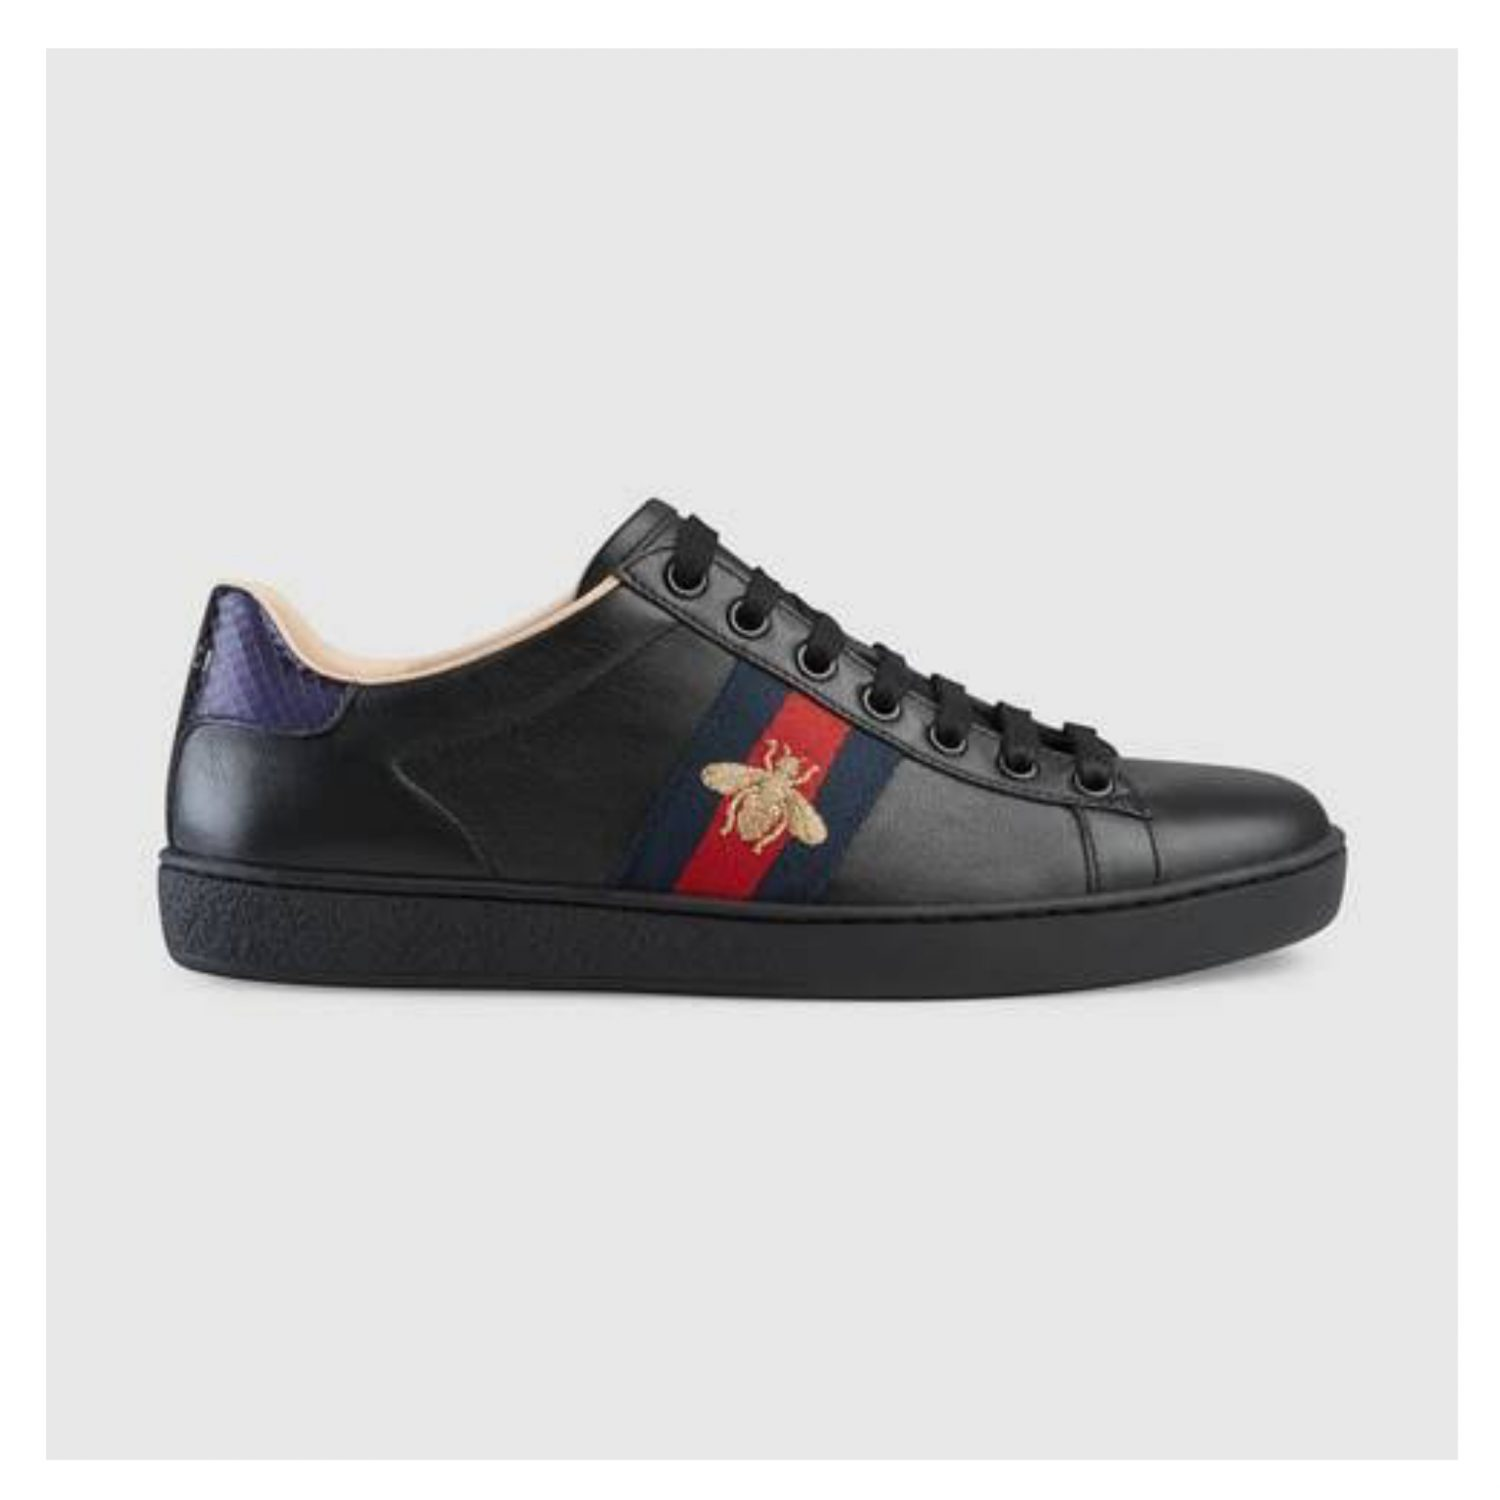 Gucci Shoes Black - Ace bee embroidered